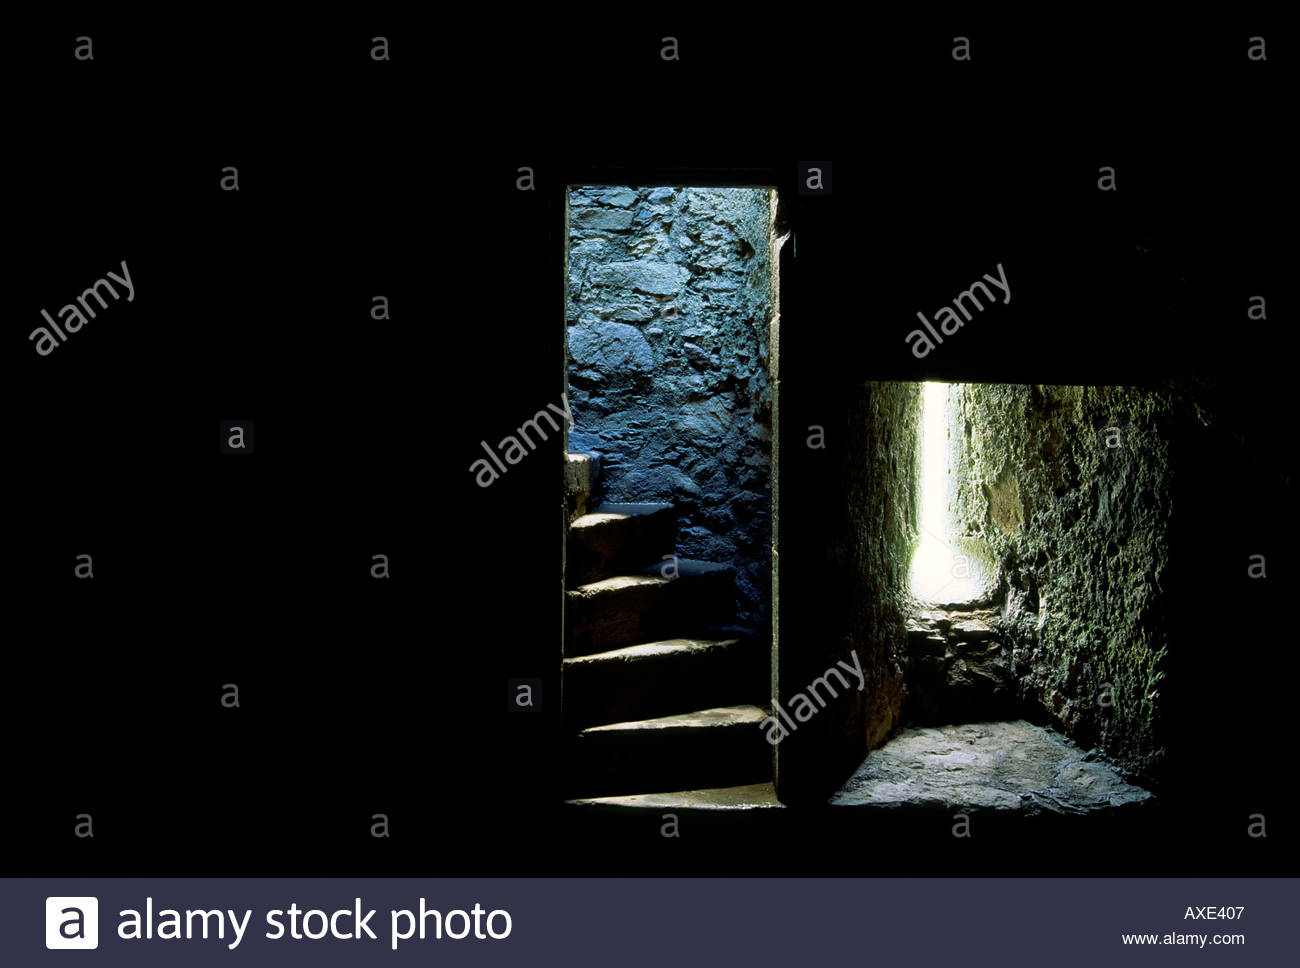 Window at night from inside - Stock Photo Step Steps Stairs Stair Stairway Doorway Door And Window Inside Stone Wall Dungeon Of Old Castle